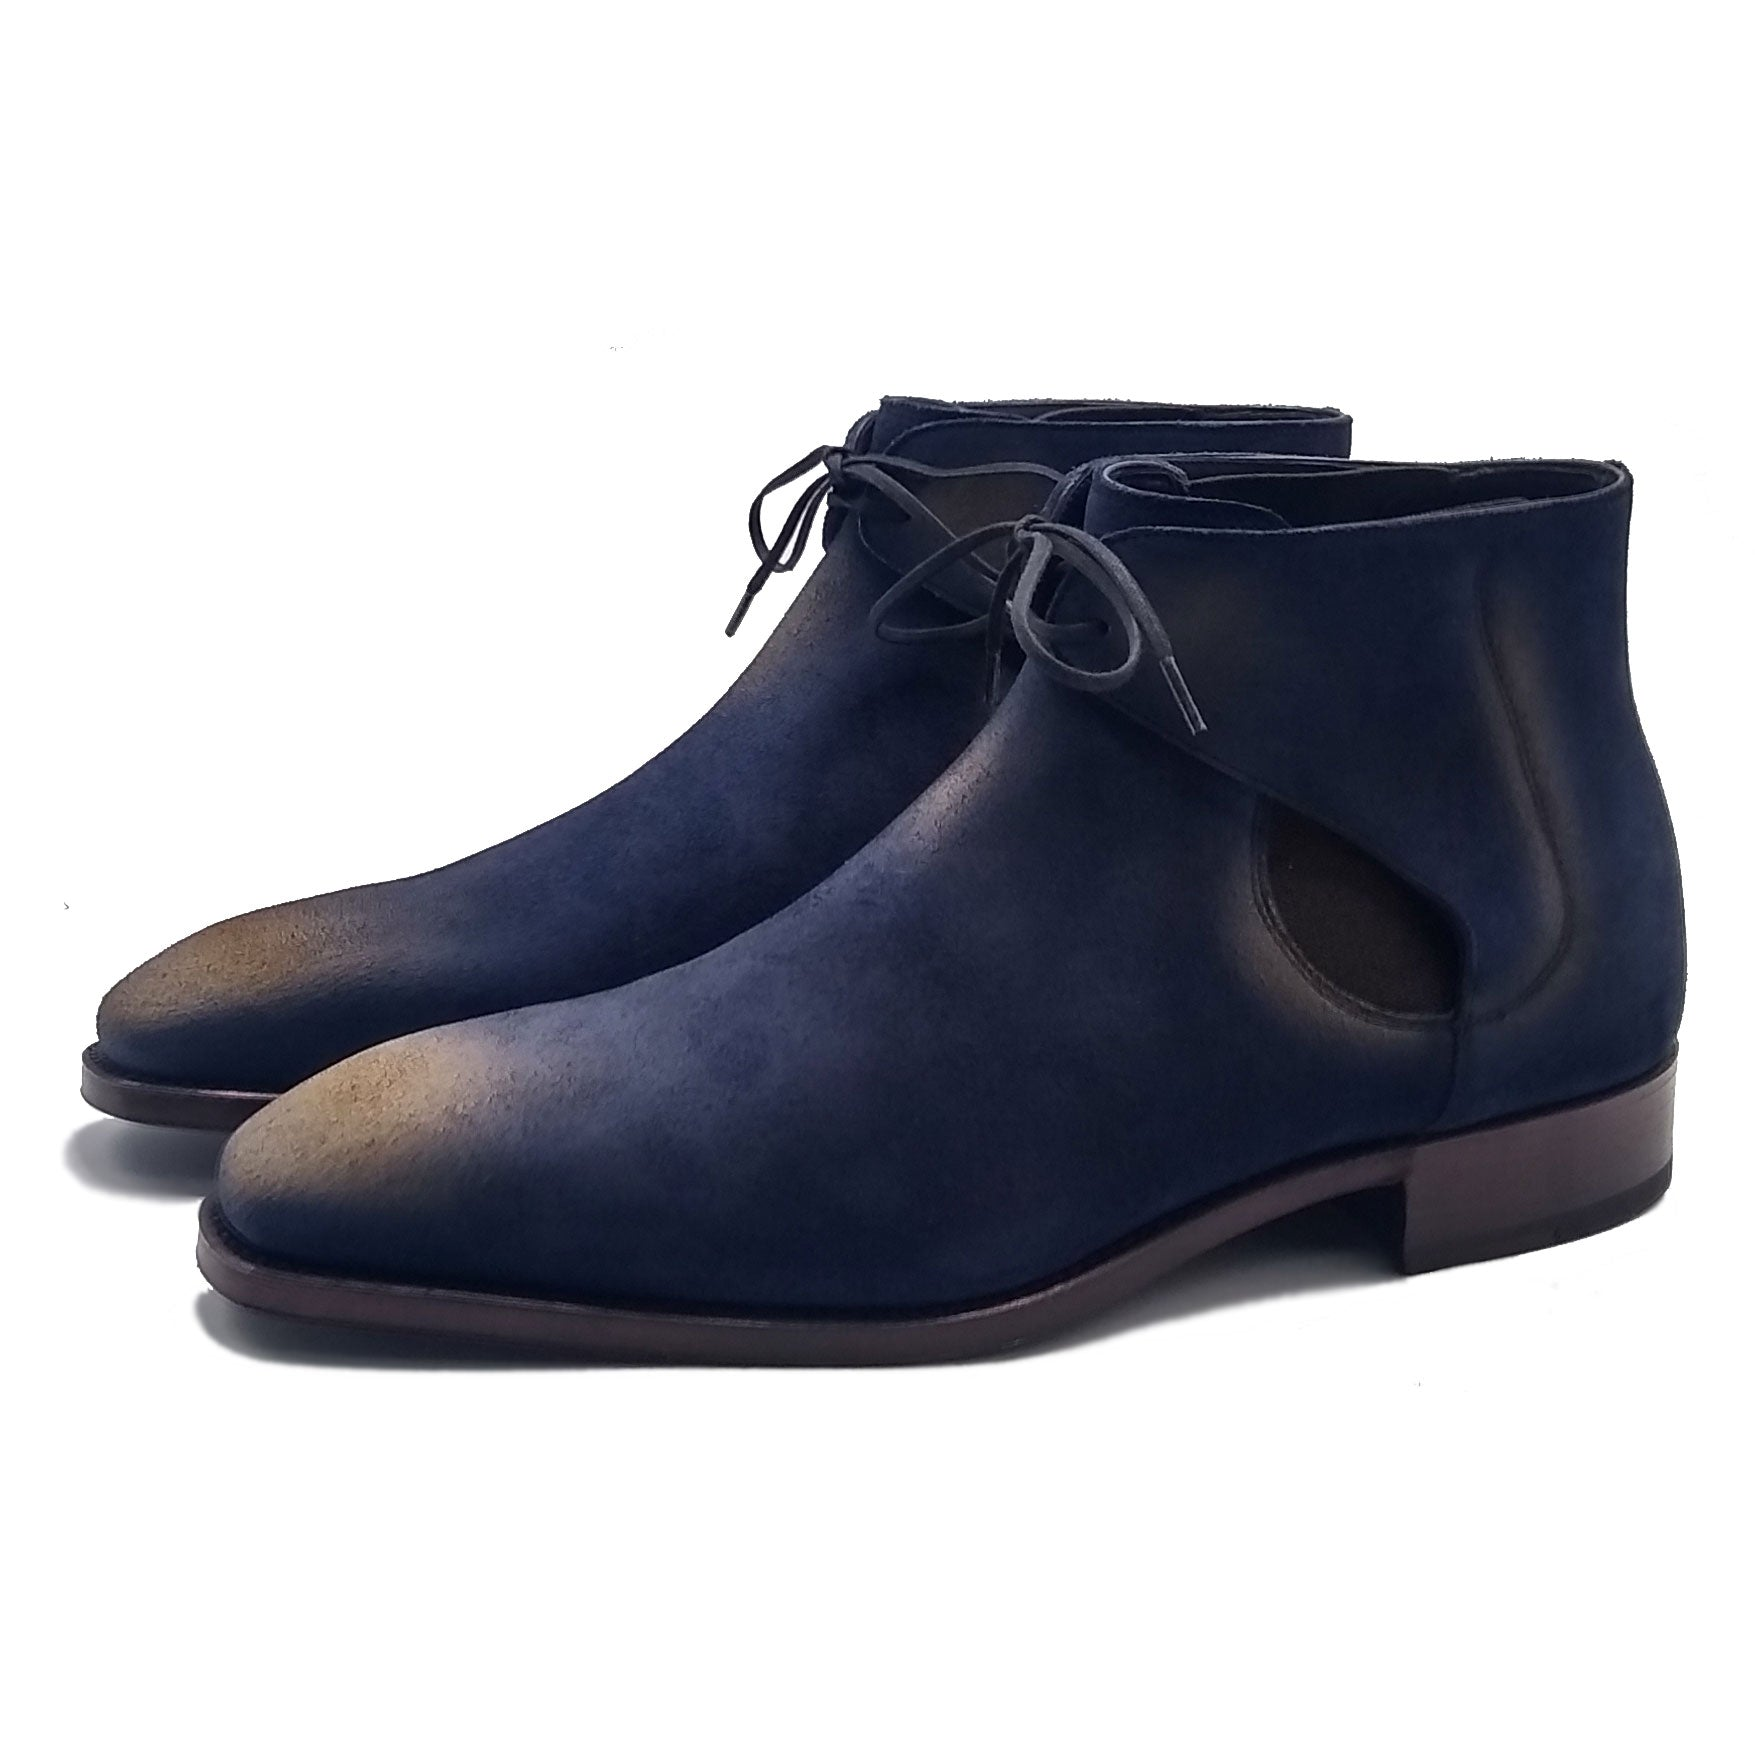 Tassel Loafer with Apron (Made-to-Order) - Gaucho Blue Suede